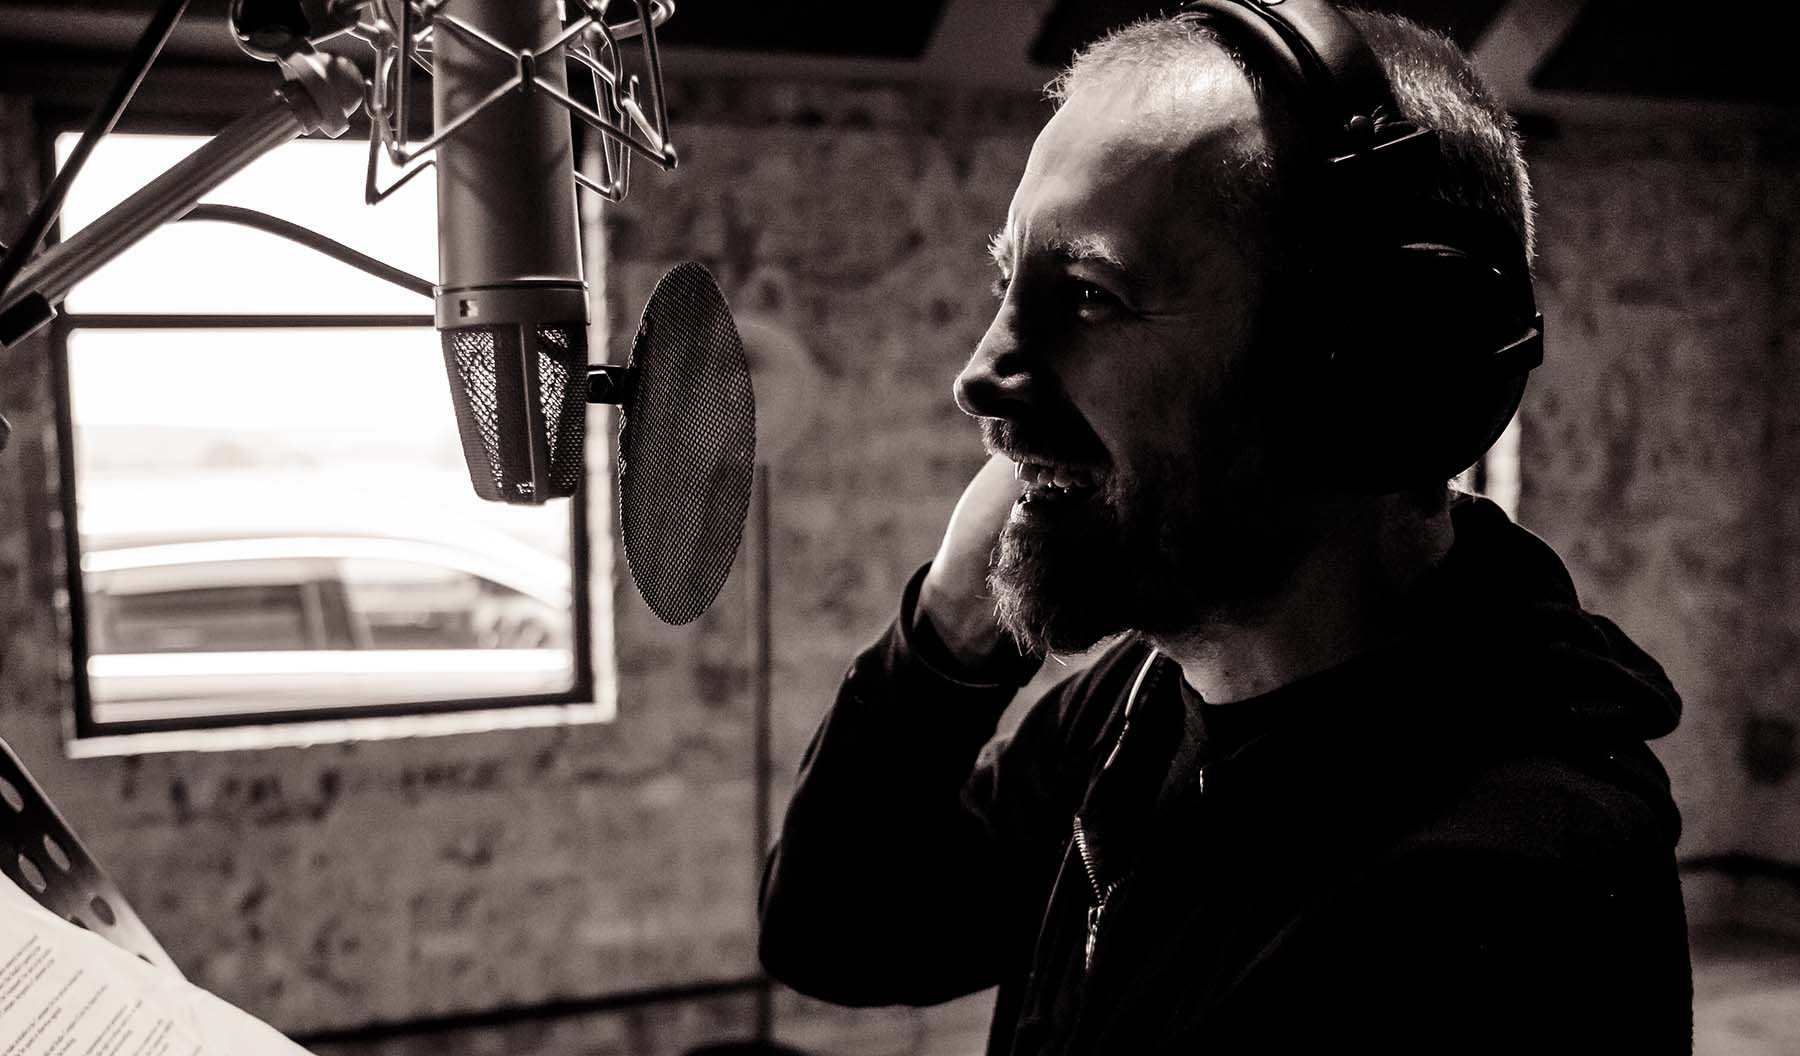 PARADISE LOST REVEAL TITLE AND DETAILS OF NEW ALBUM